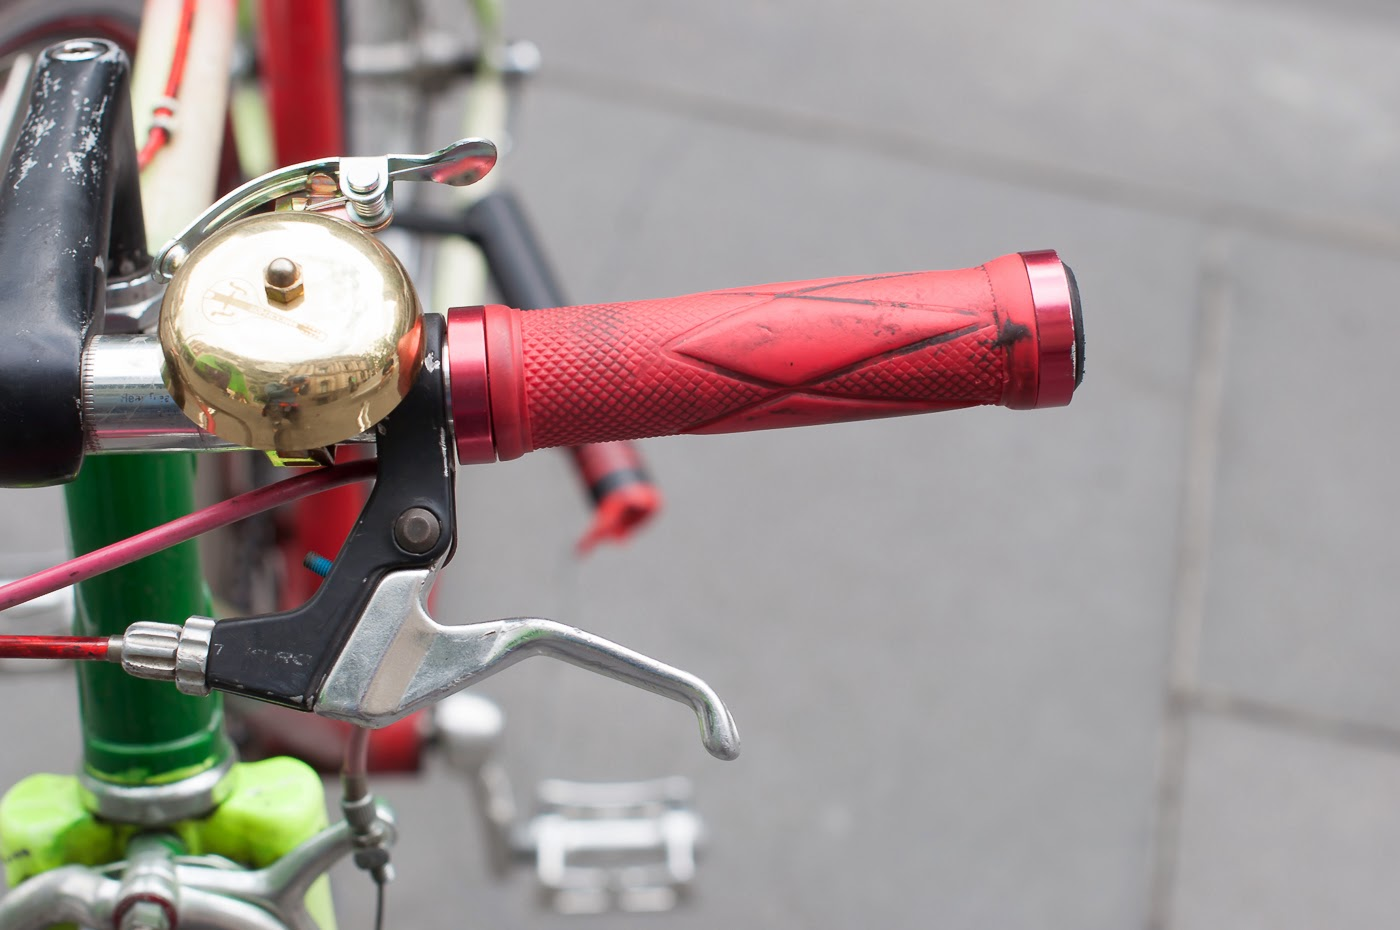 Pub bike, bike, bicycle, conversion, road bike, tim macauley, the biketorialist, Melbourne, Australia, swanston st, handlebar, bell